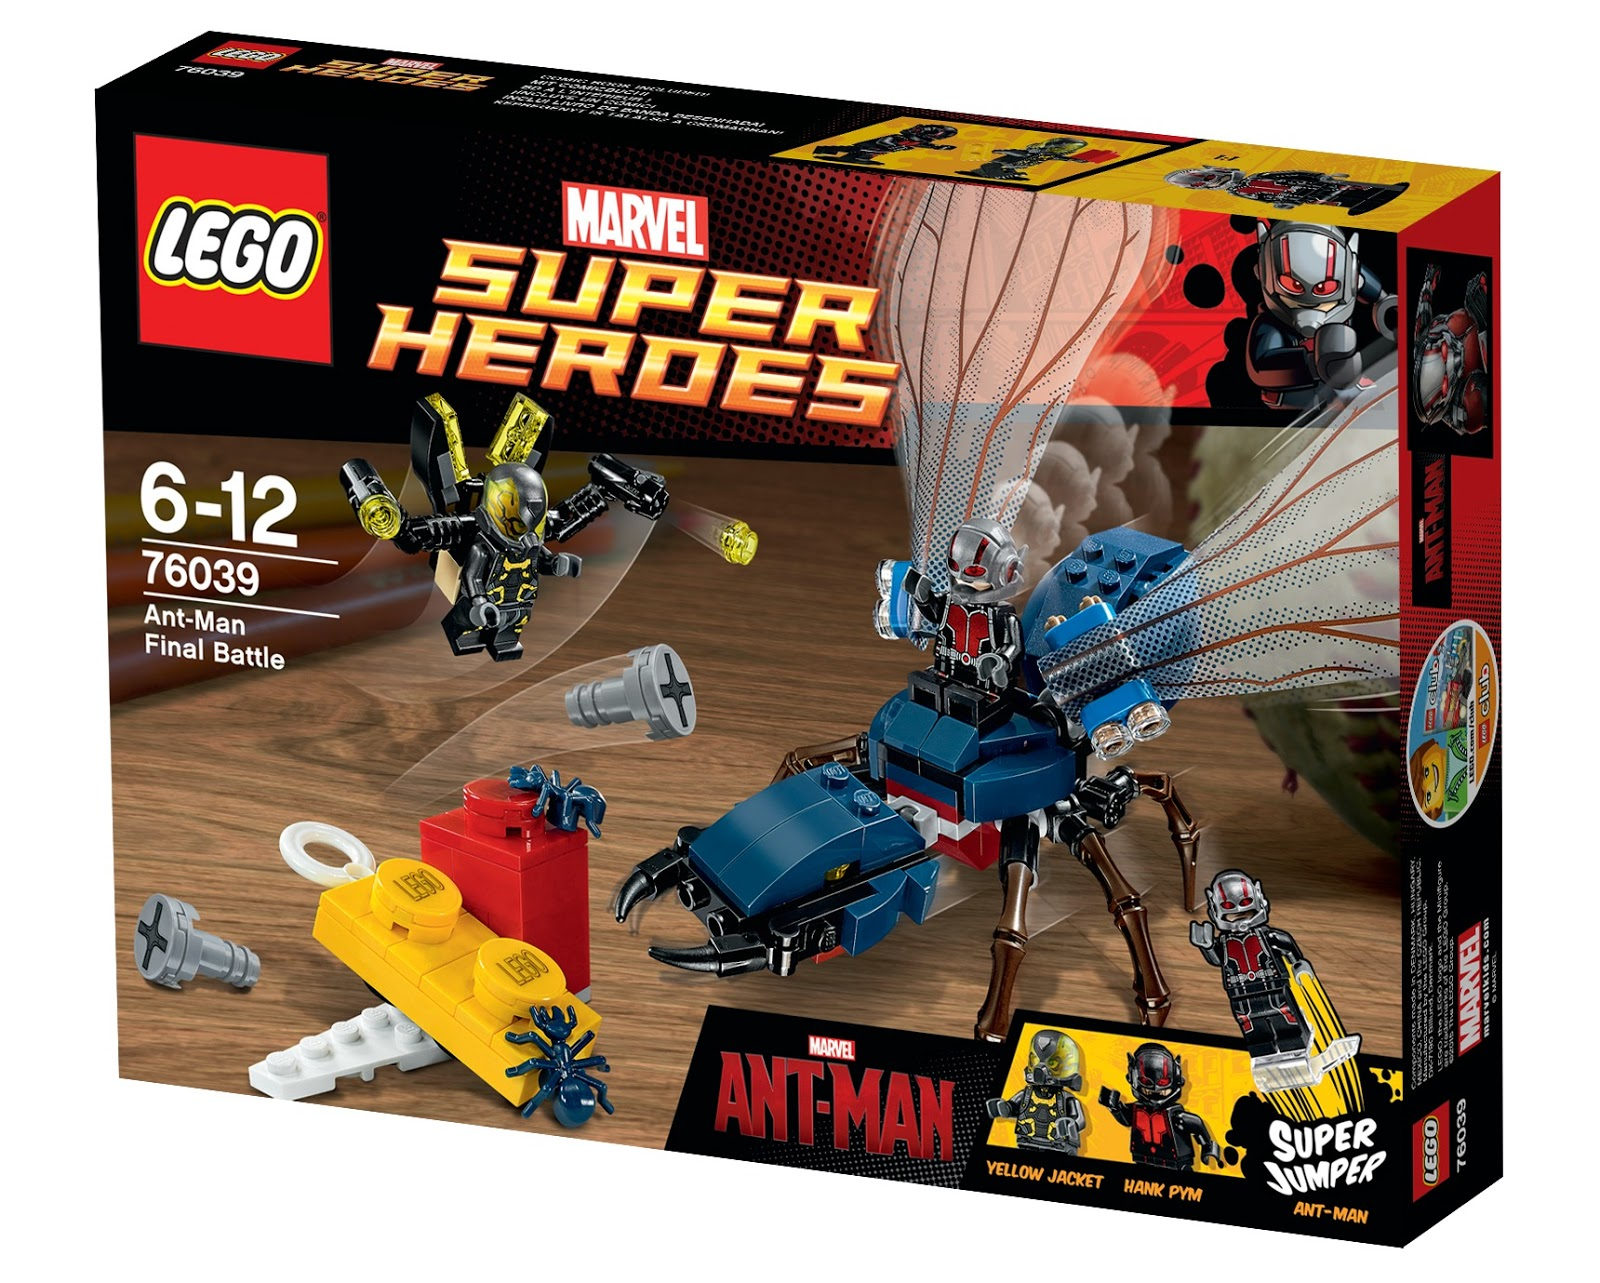 LEGO Marvel Super Heroes Ant-Man Set Release | This Is Life